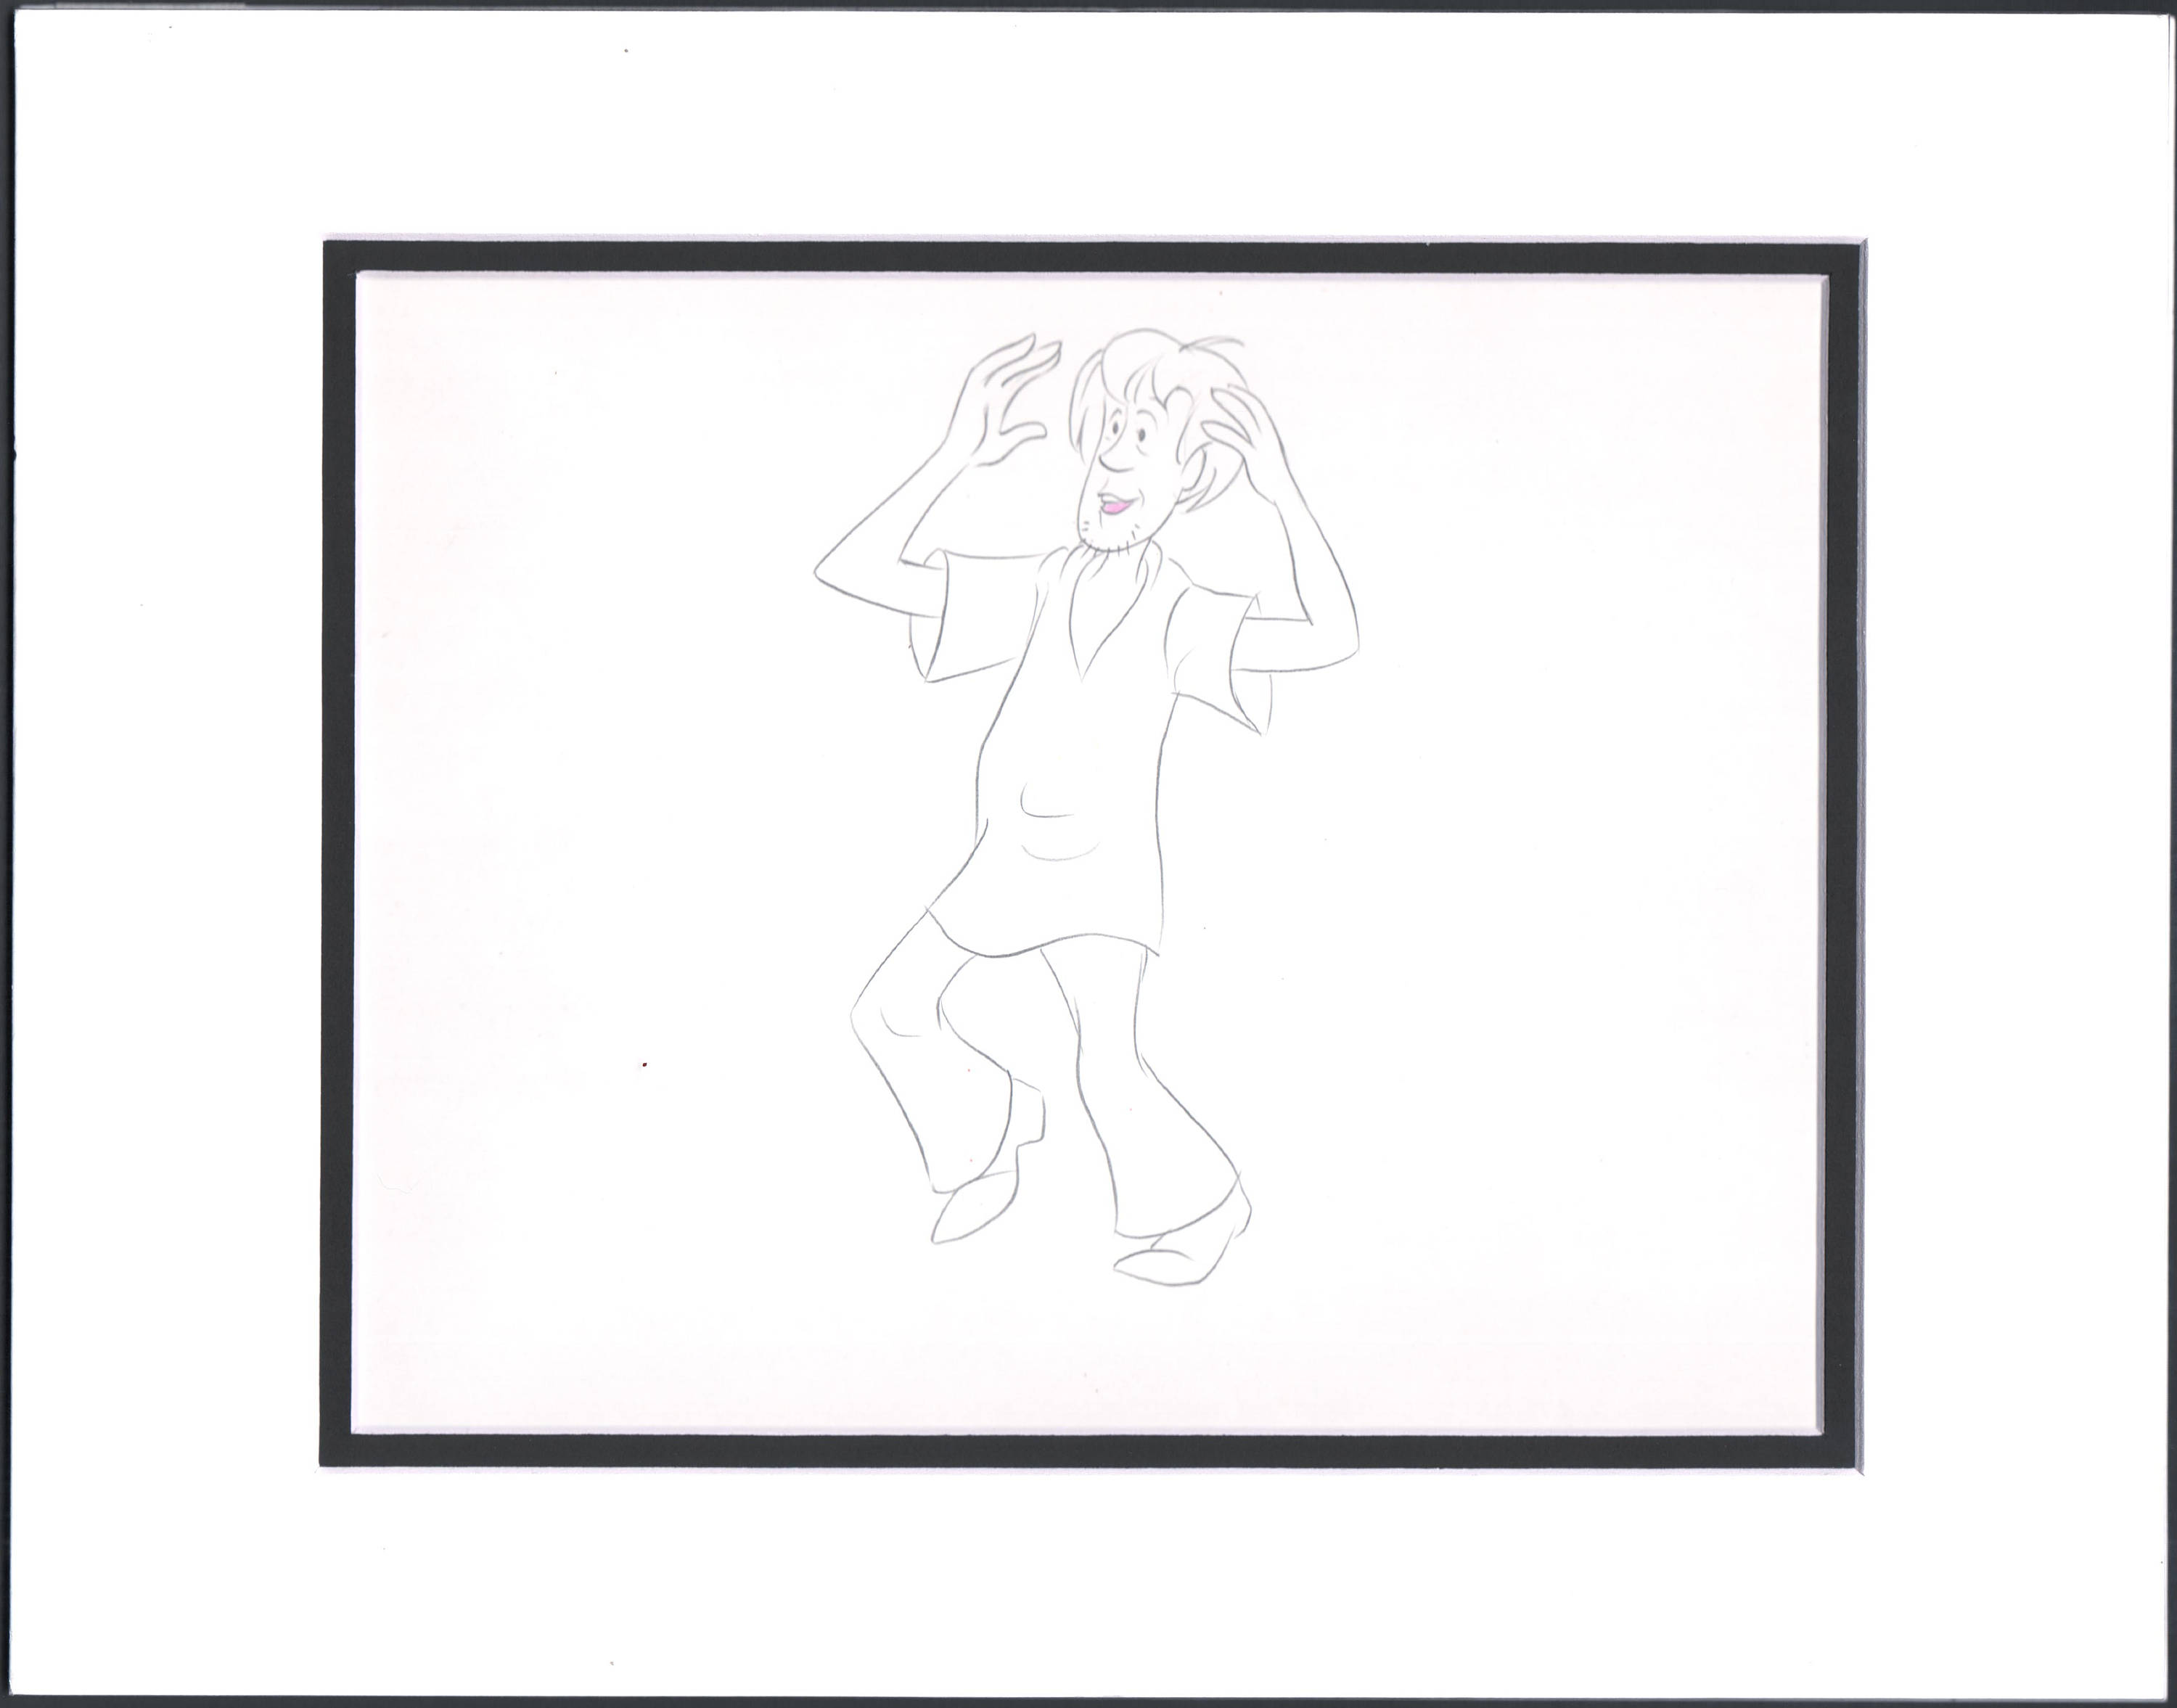 3000x2354 scooby doo shaggy production animation cell drawing etsy